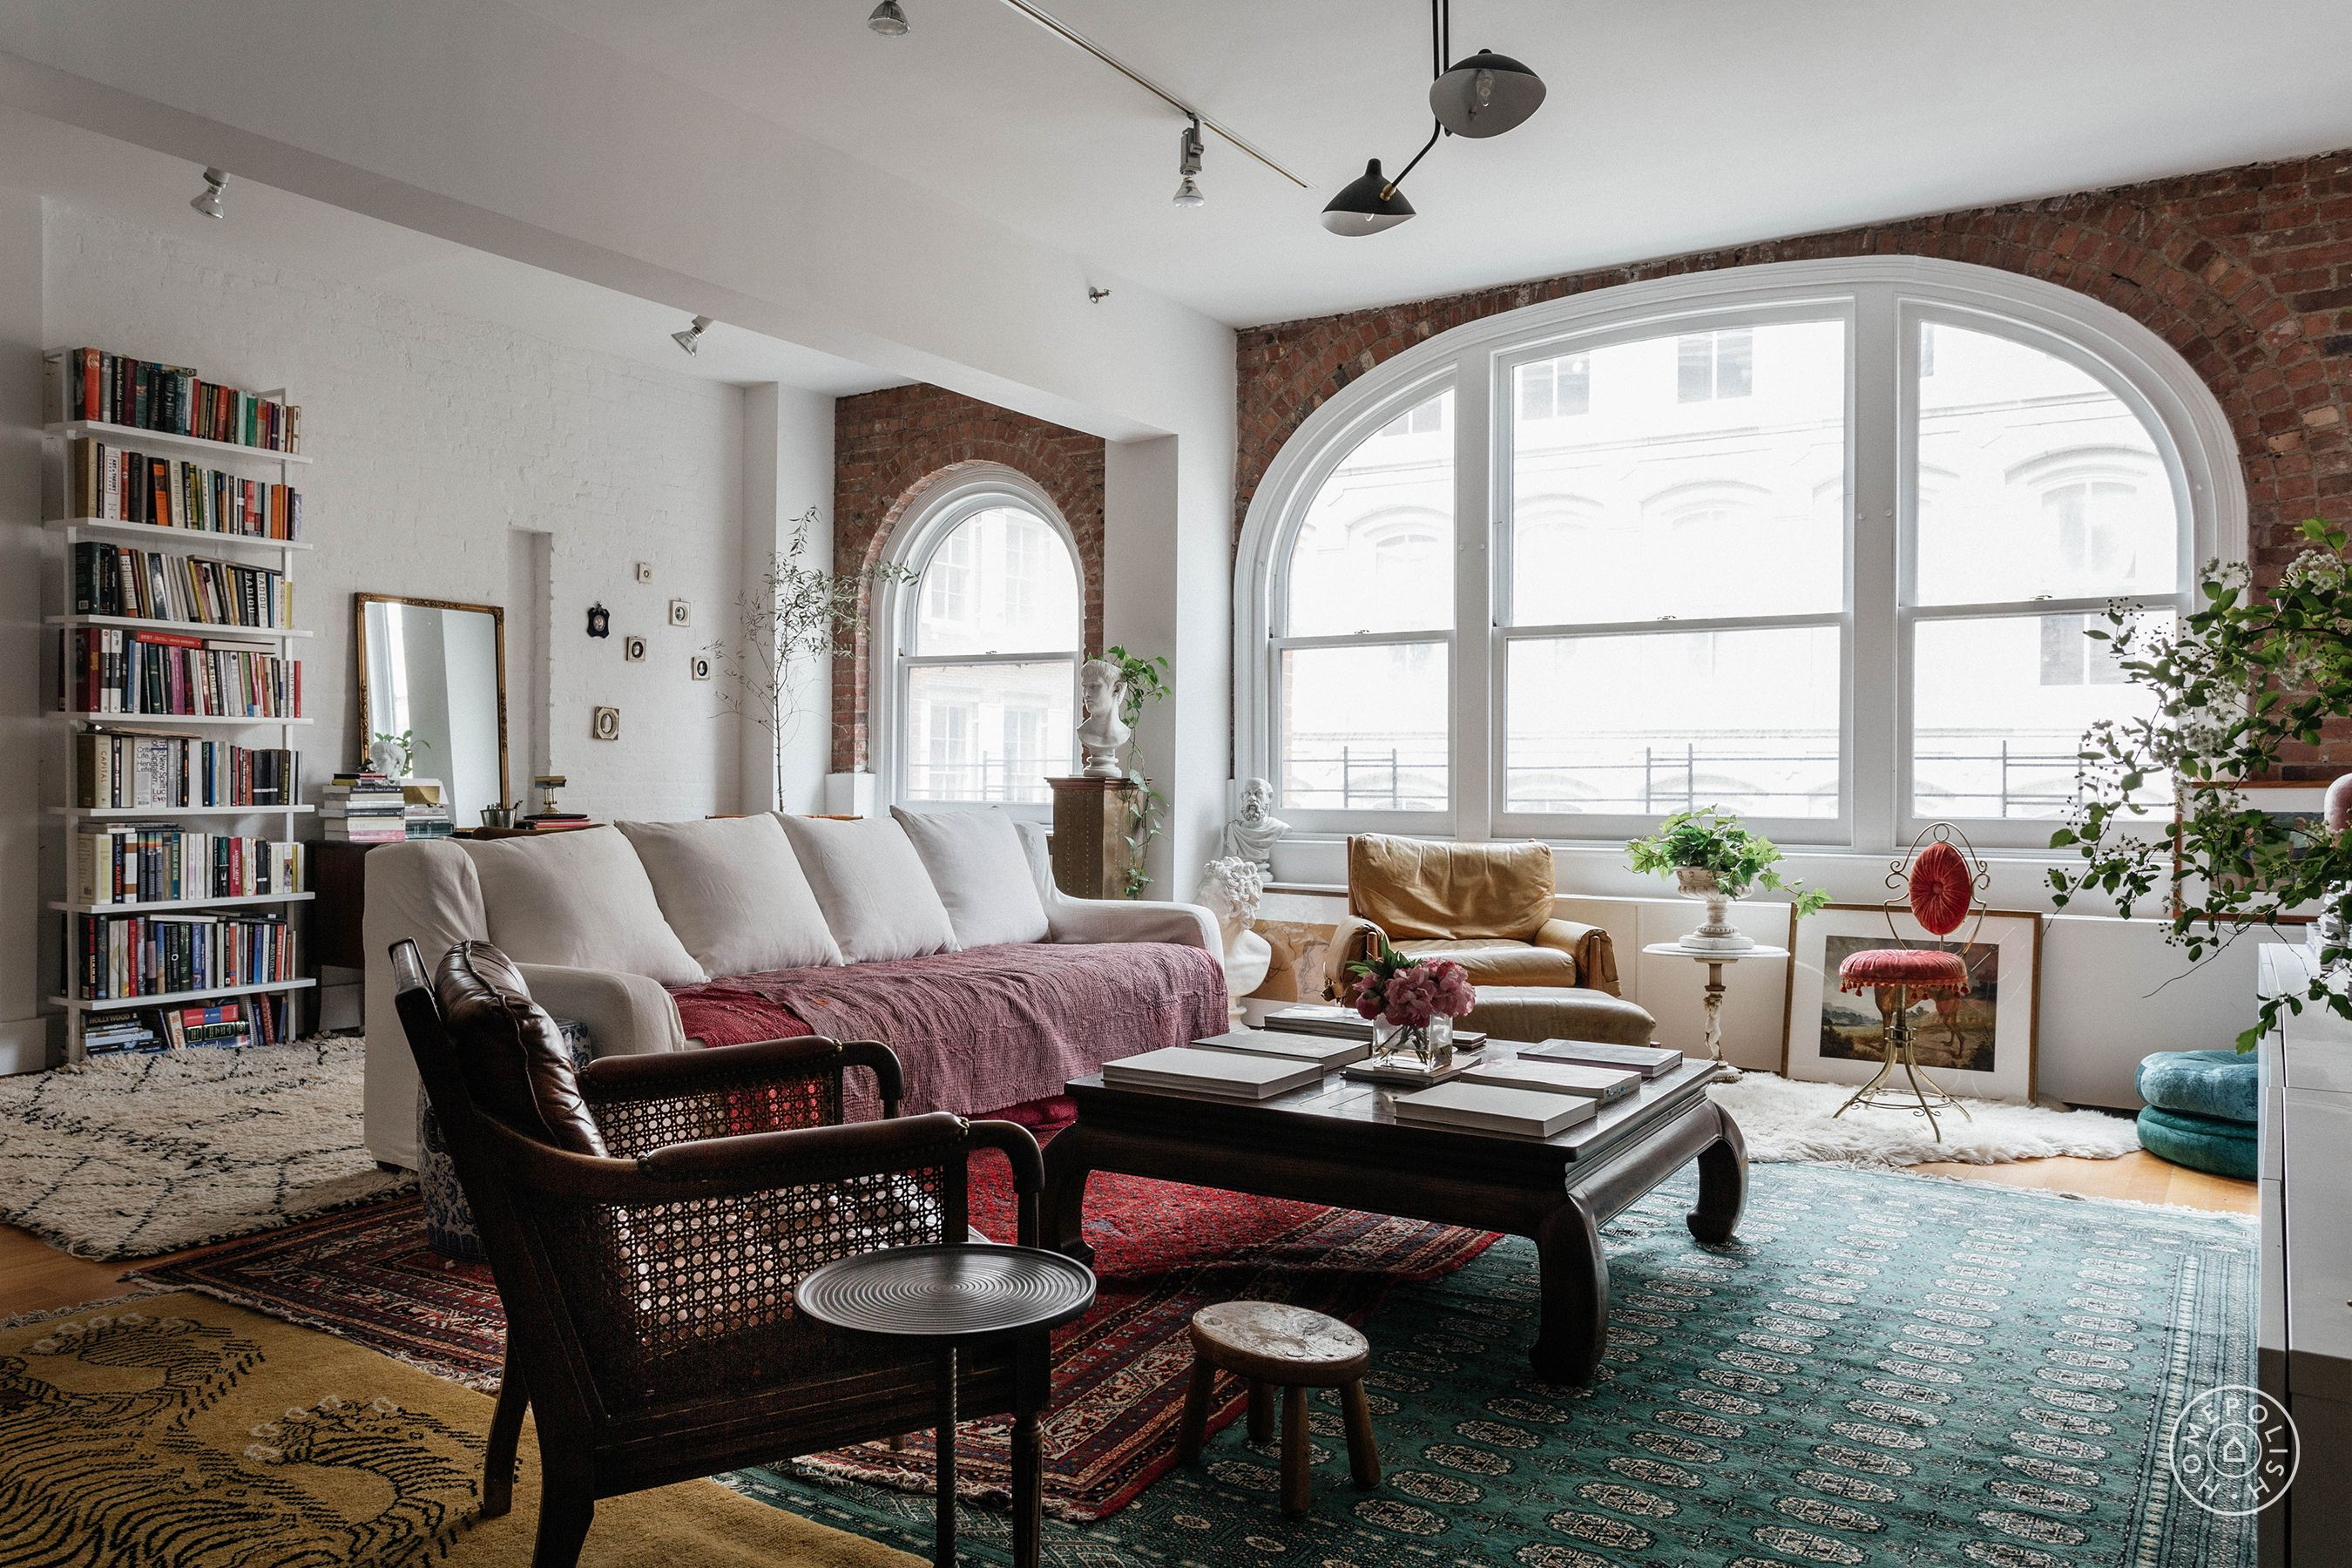 This expert mix of styles speaks to the designers eclectic eye